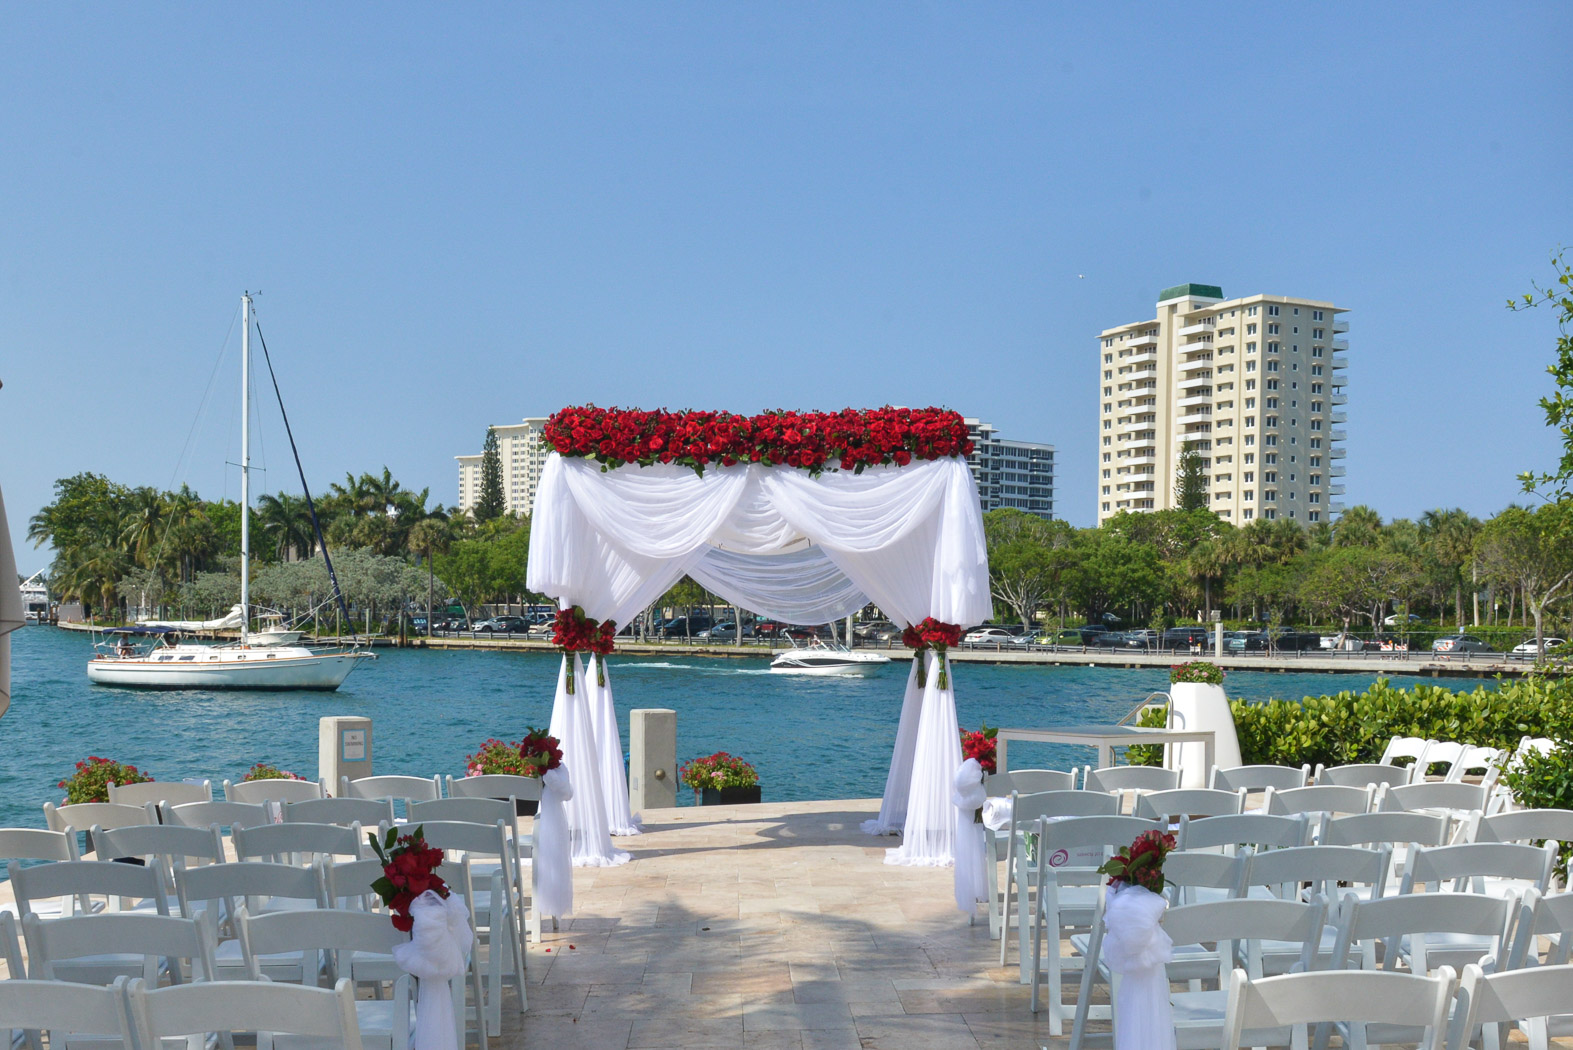 Wedding on the water with chairs & aisle toward altar